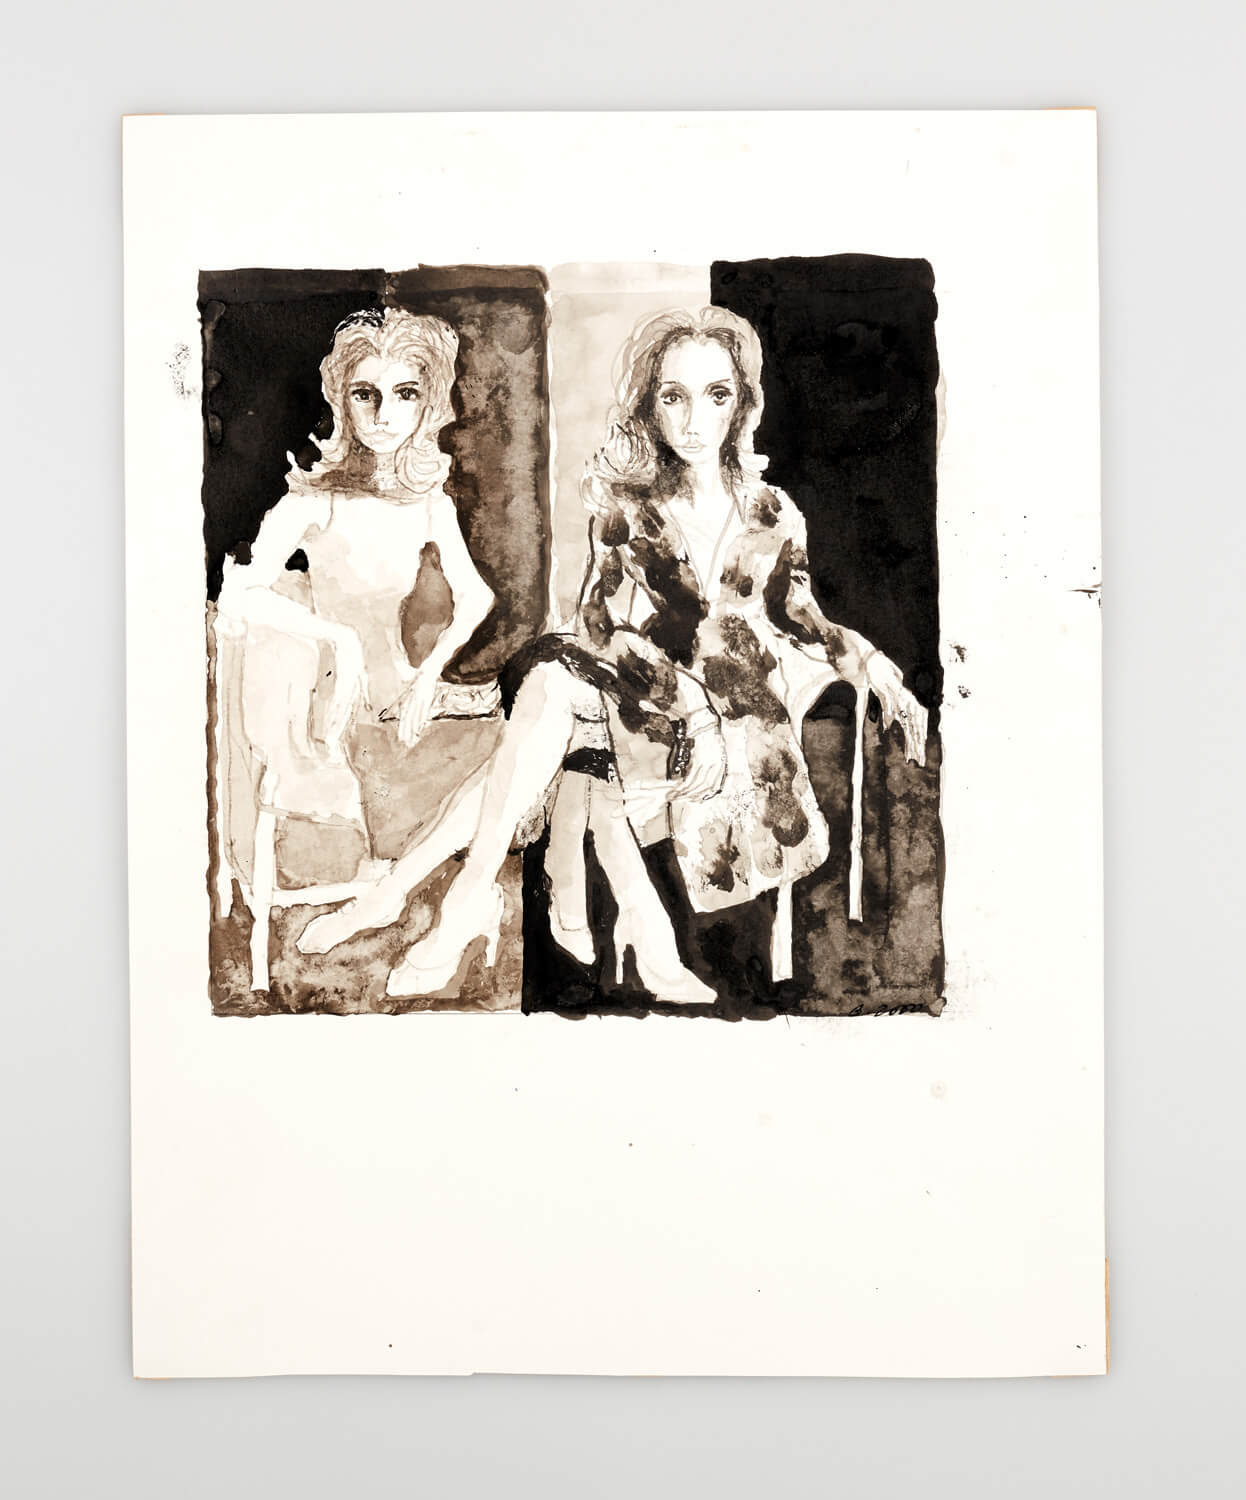 JB116 - Two Mannequins - 2000 - 27 x 26 cm - Indian ink and wash on paper